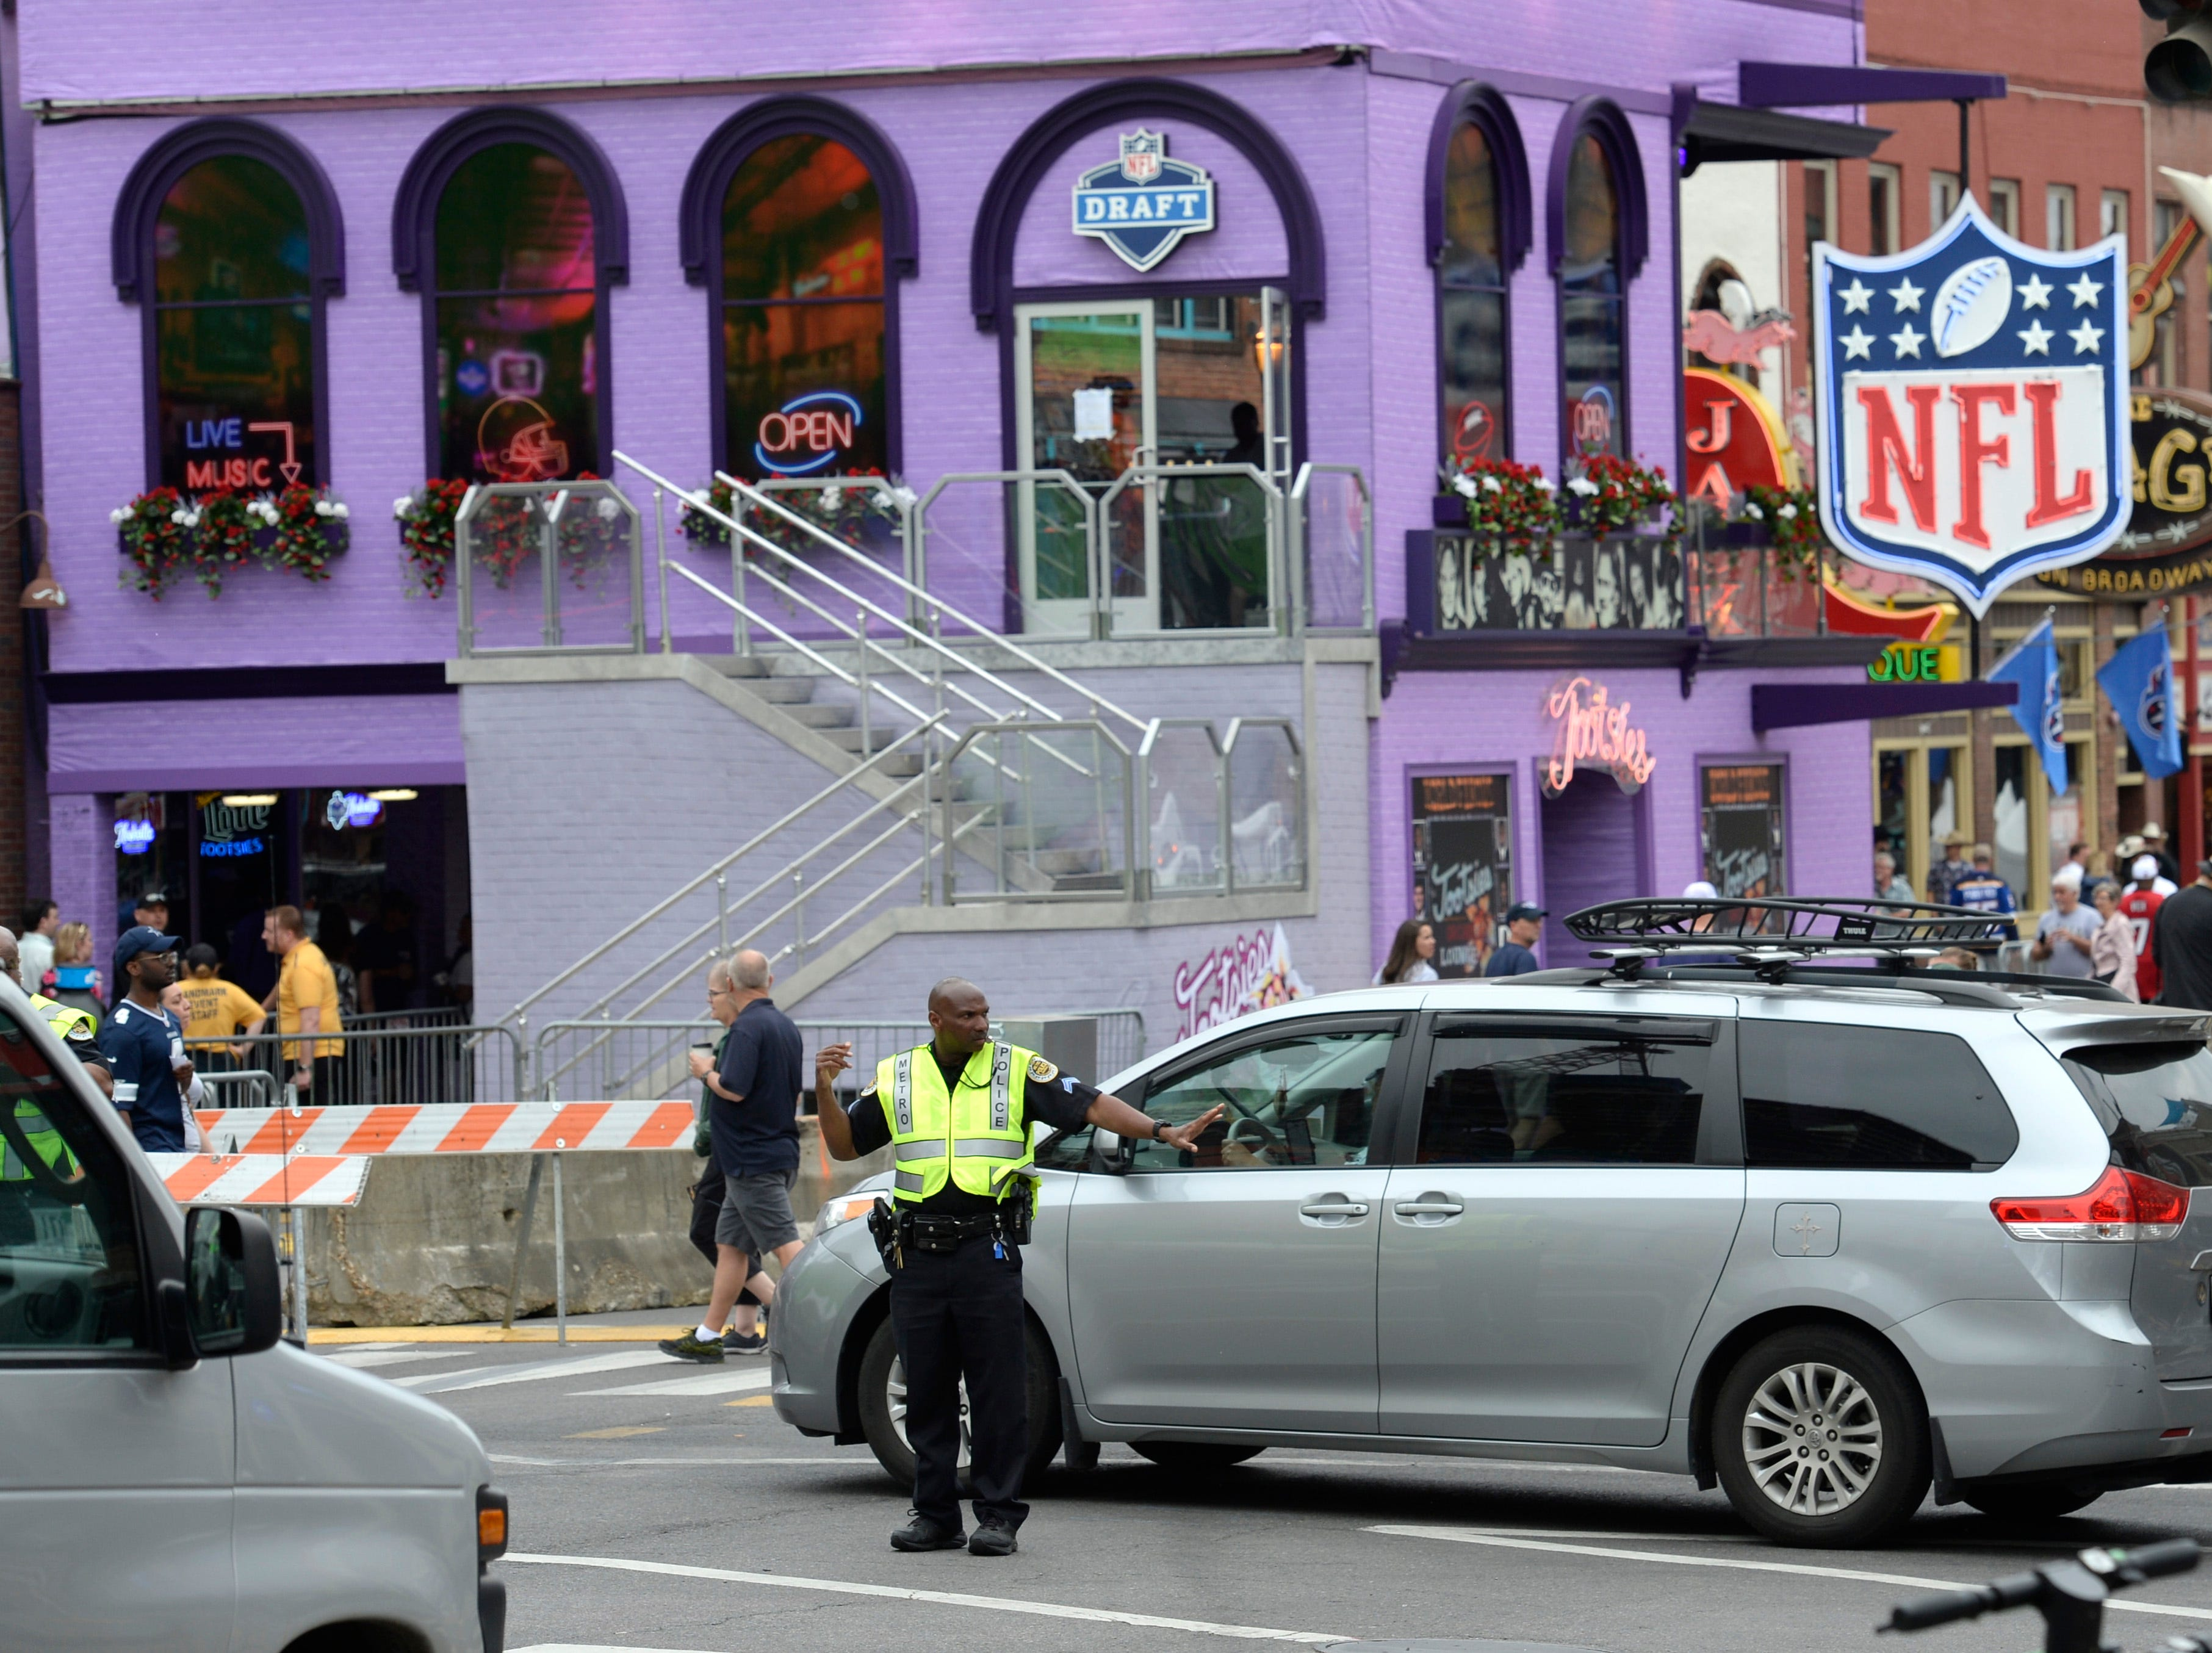 A Metro Nashville police office moves traffic along Fifth Ave. at Broadway before the start of the 2019 NFL Draft in Nashville, Tenn., Thursday, April 25, 2019.